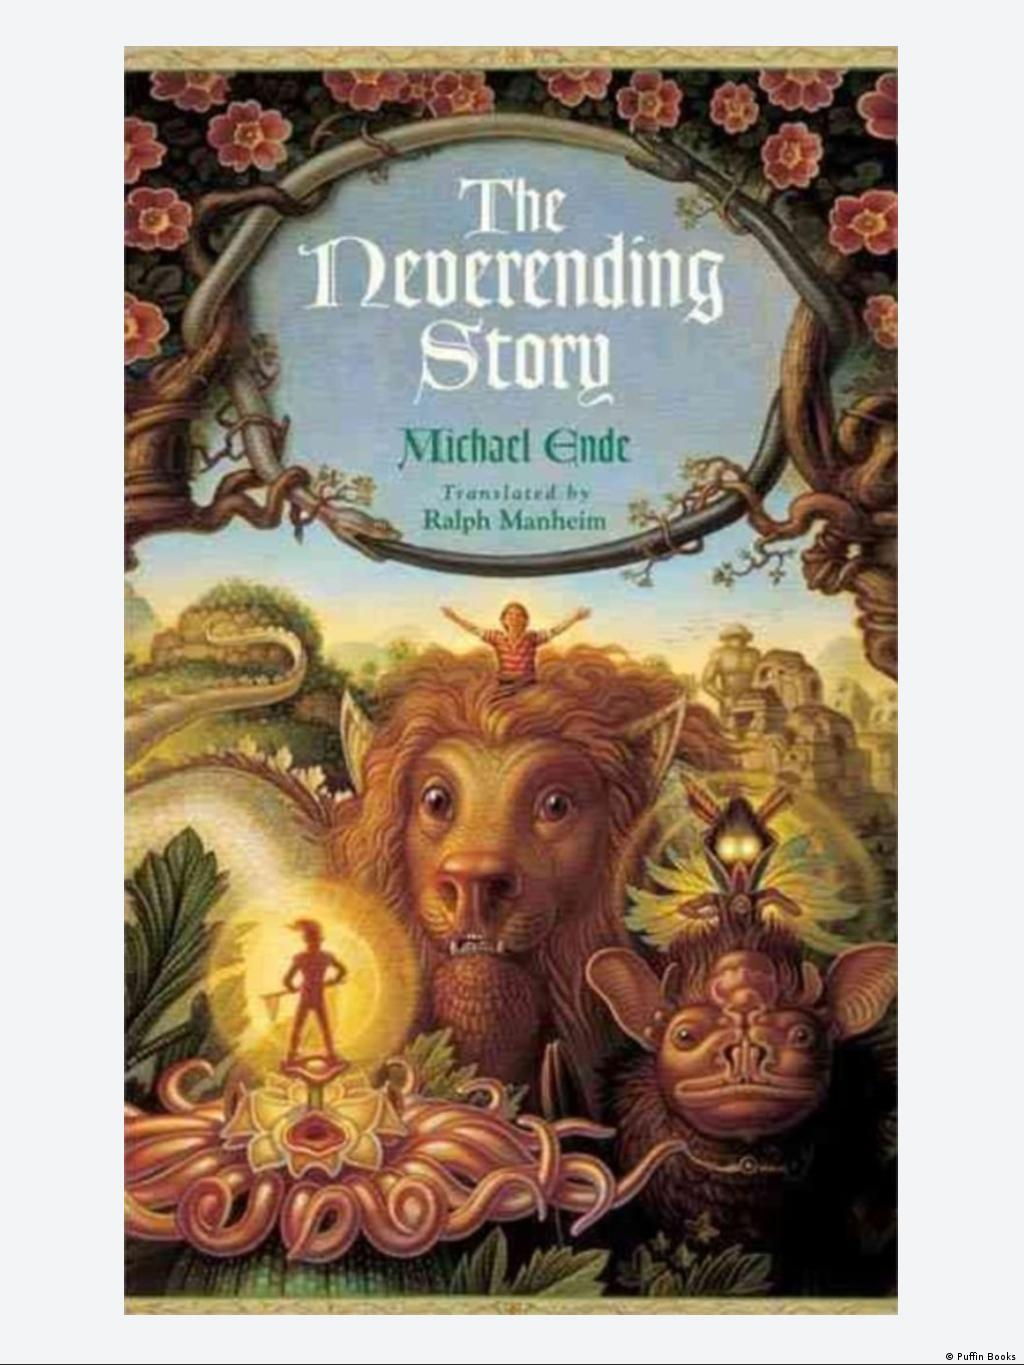 Why Michael Ende′s ′The Neverending Story′ is cult | Books